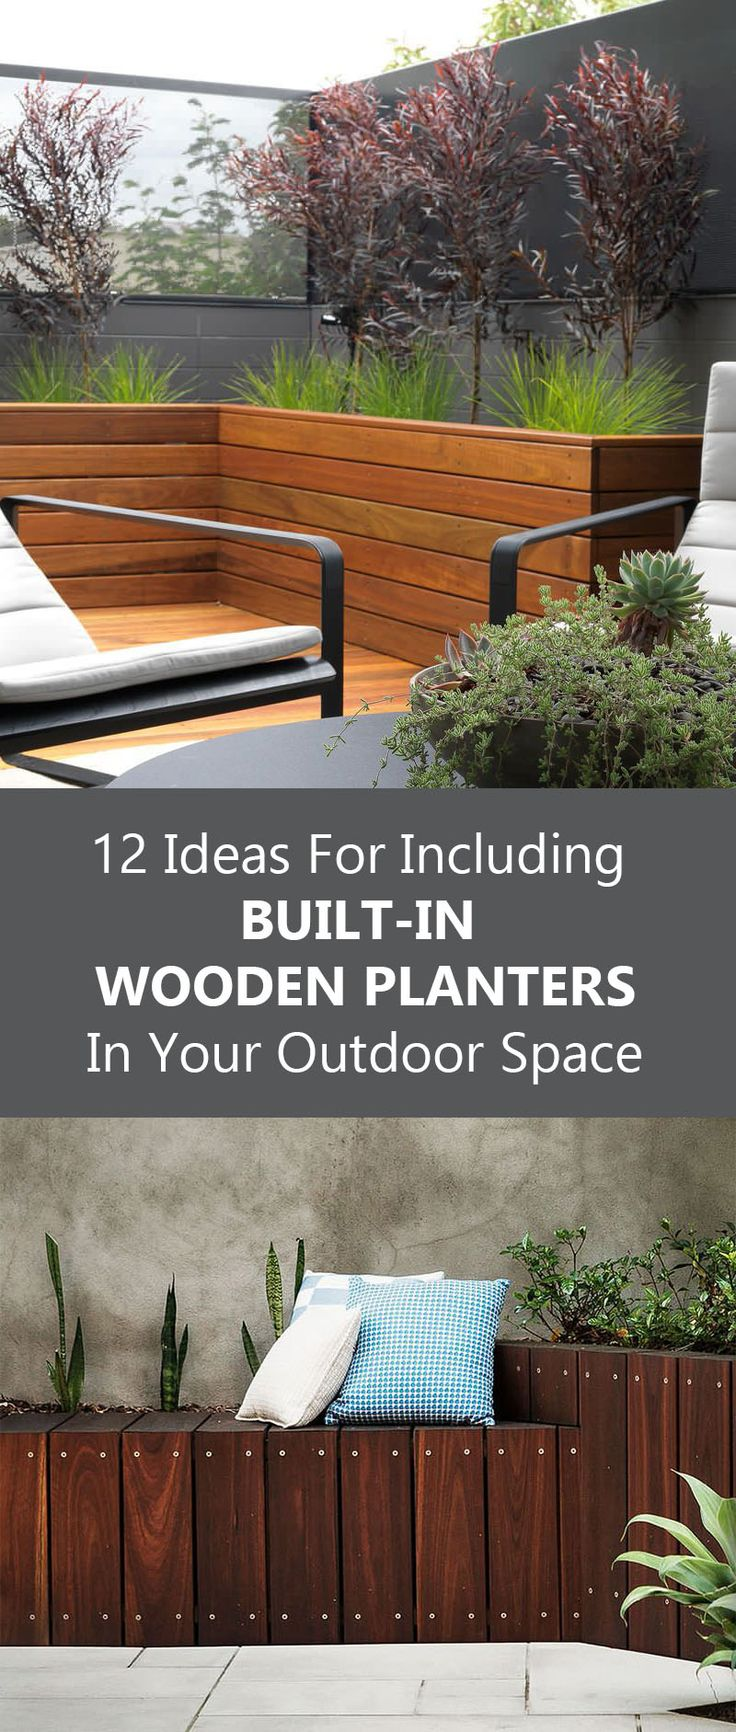 24 best Yard 2017 images on Pinterest | Landscaping, Decks and ...